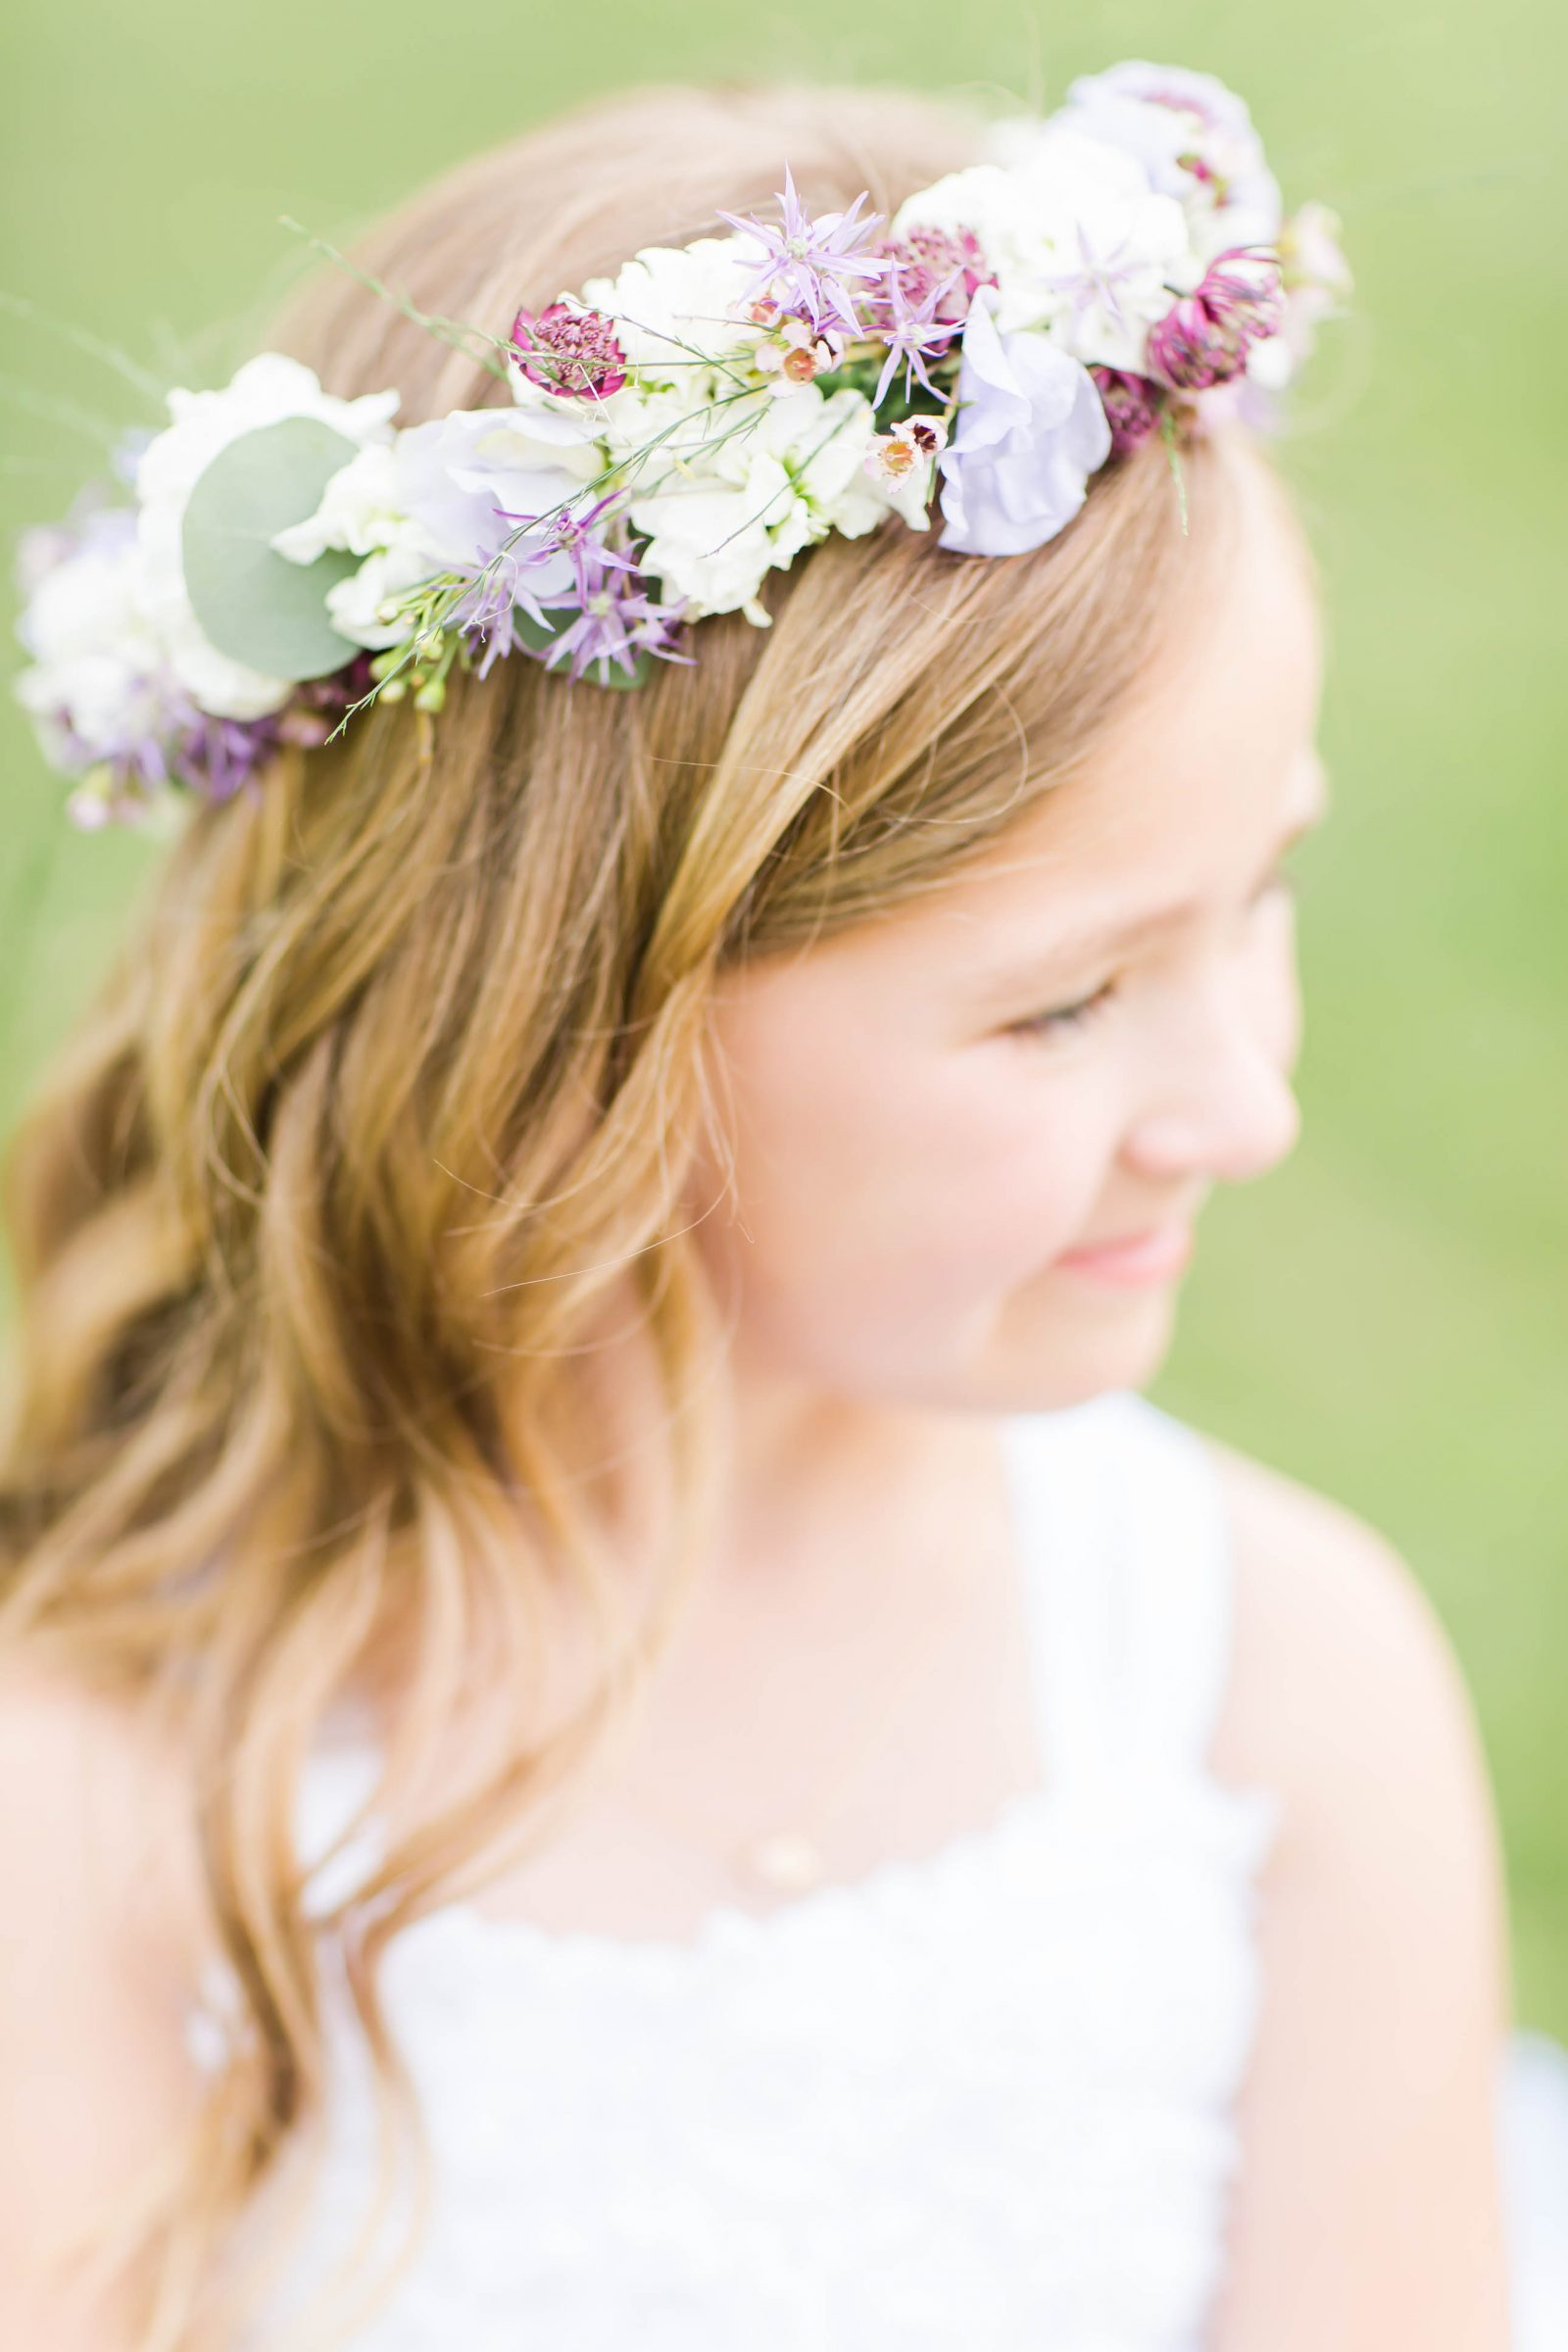 rivercrest-farm-summer-wedding-loren-jackson-photography-51